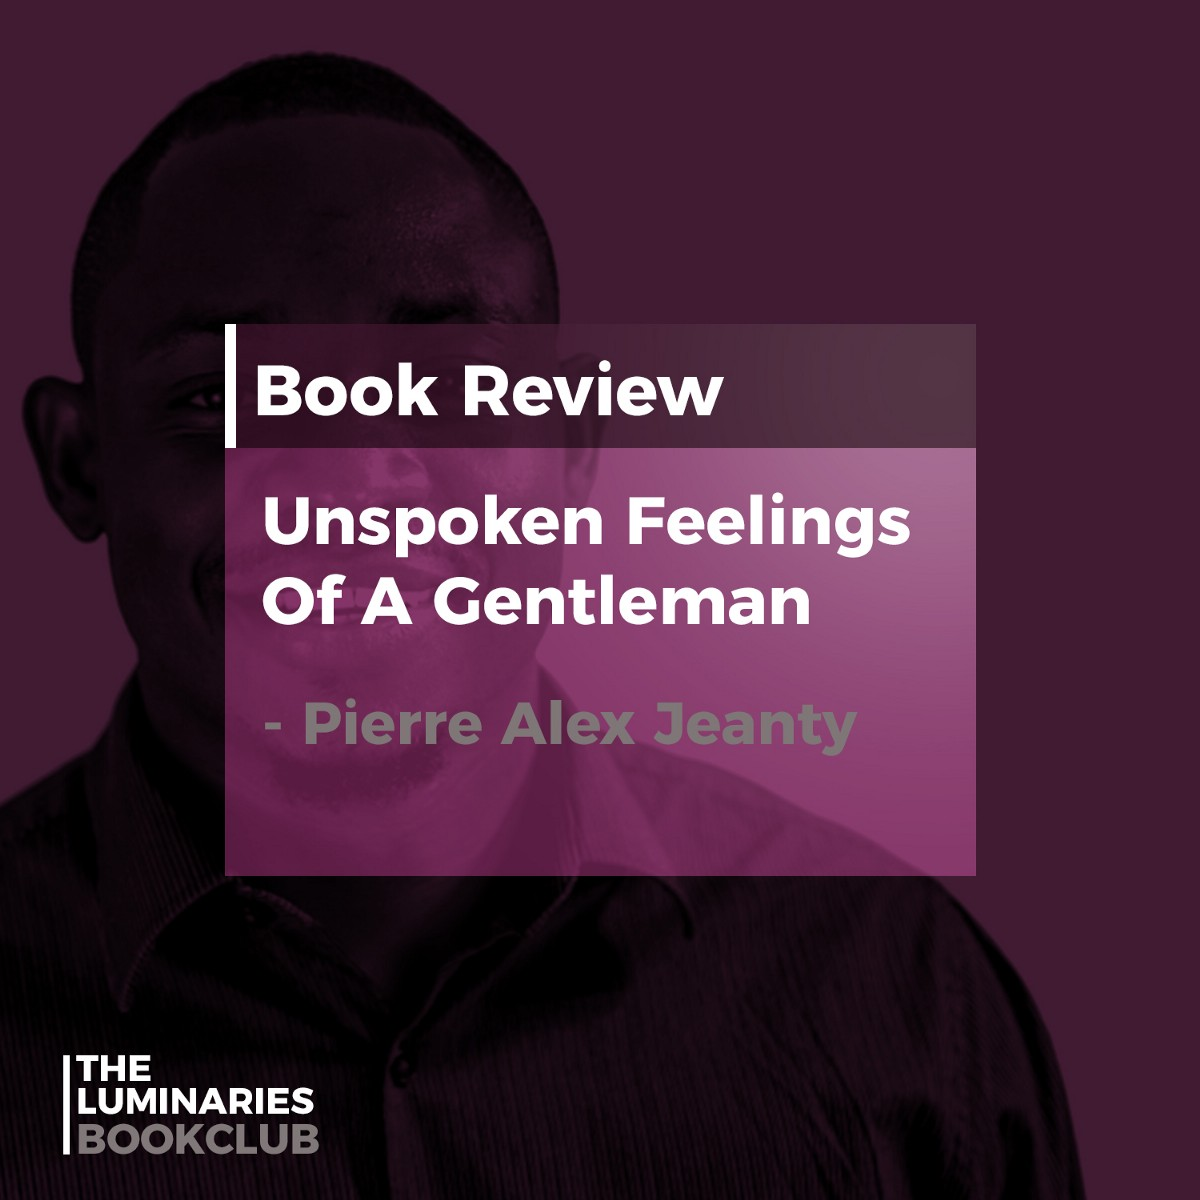 Unspoken Feelings Of A Gentleman By Pierre Alex Jeanty Book Review Oluwaloseyi John By The Luminaries Bookclub Medium